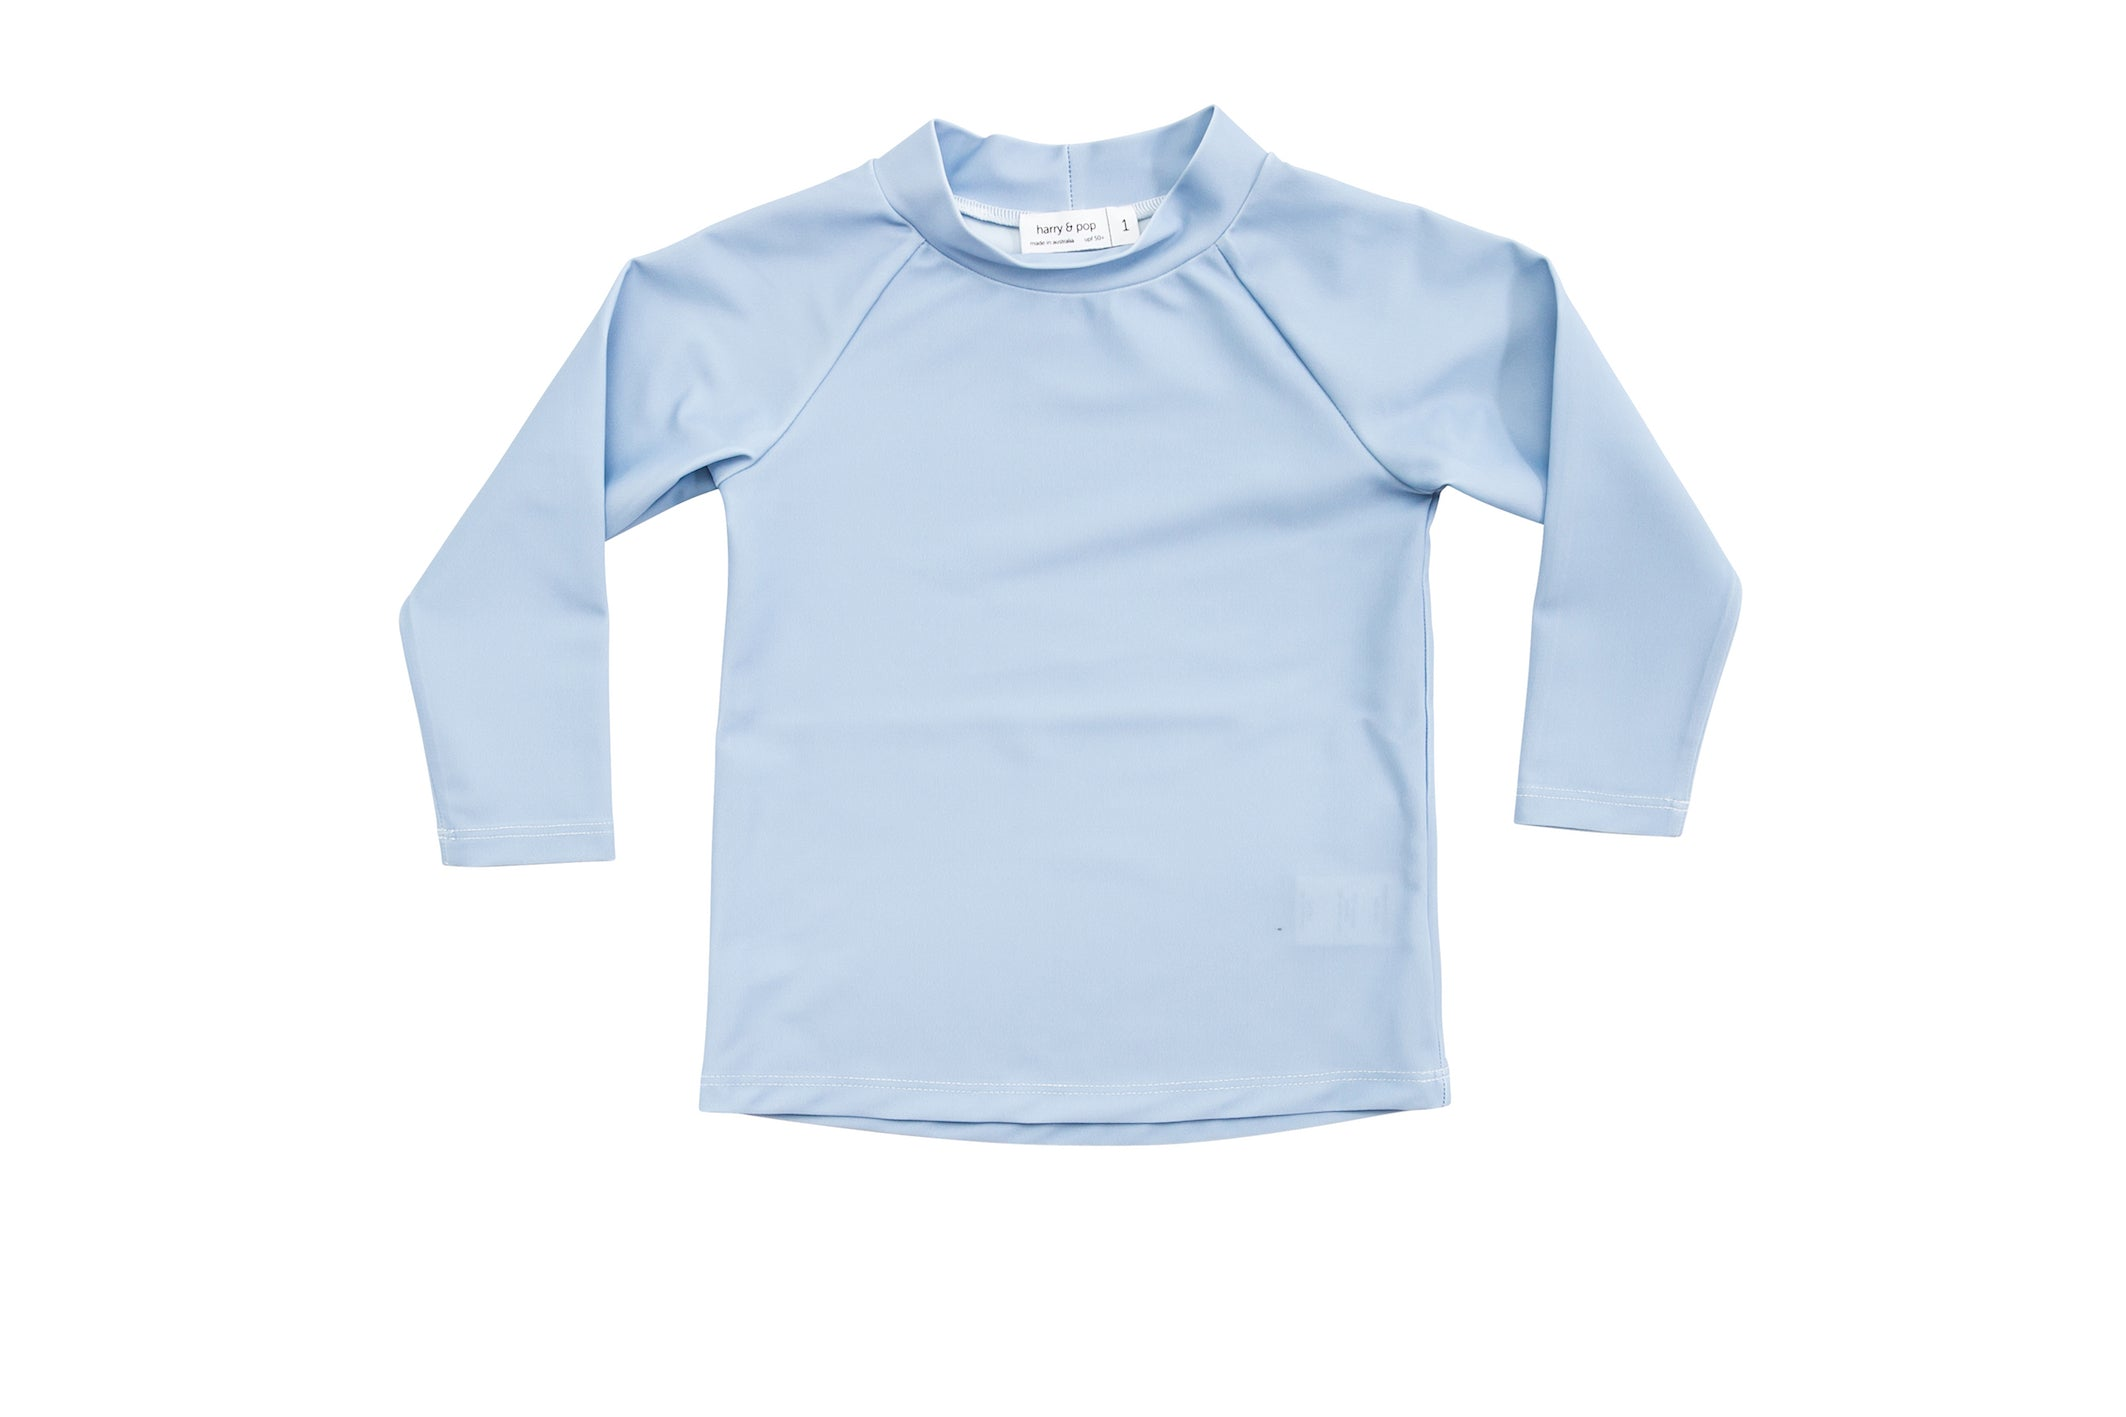 harry & pop original rashguard in byron bay blue | rashie | rashvest